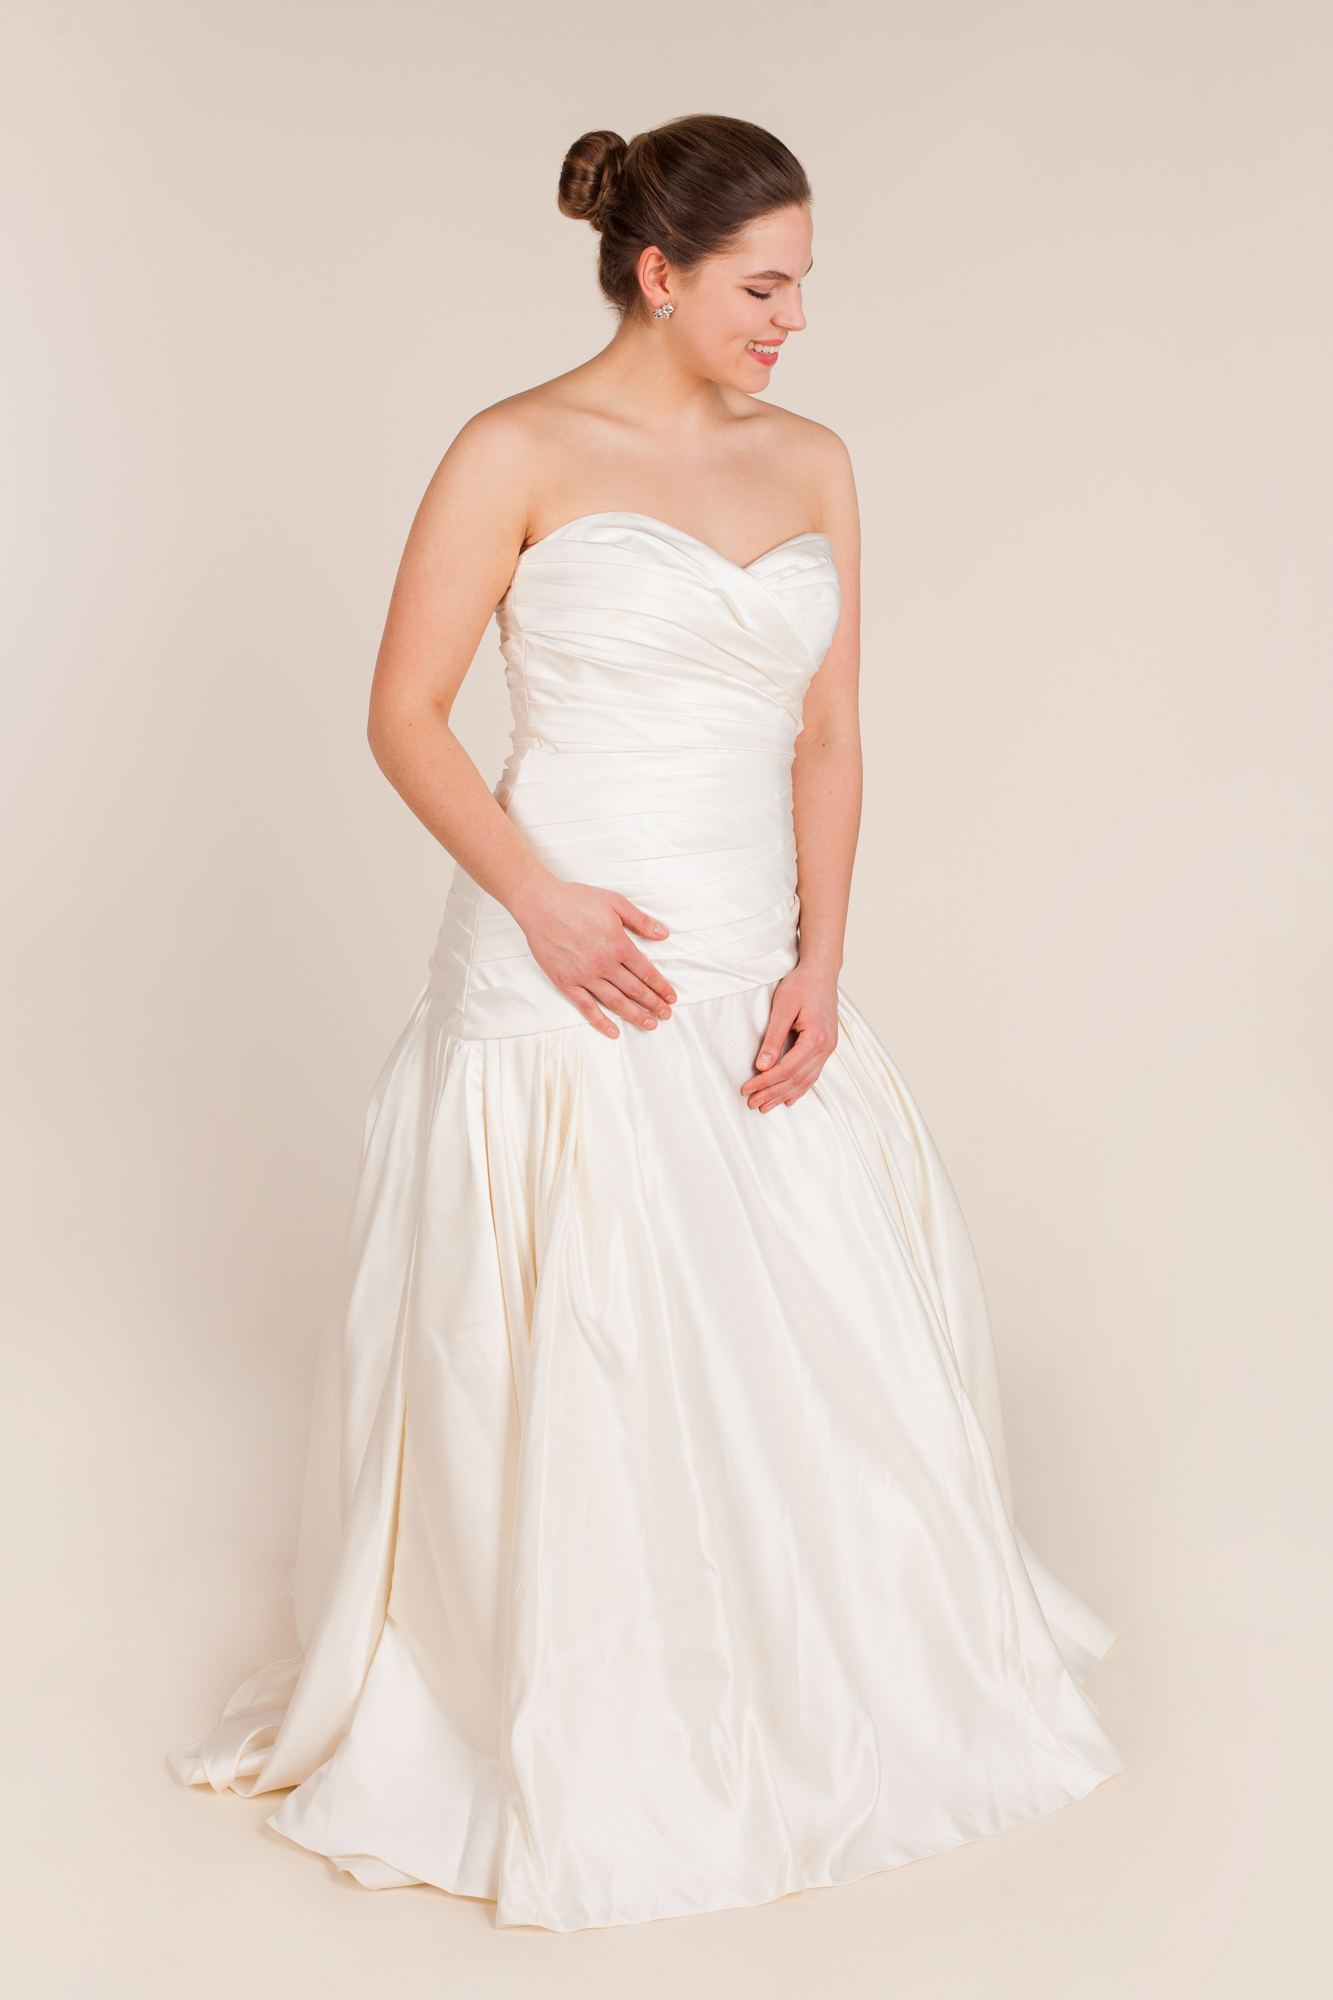 David's bridal - MB3651 size 12 - $555 - (26% OFF)